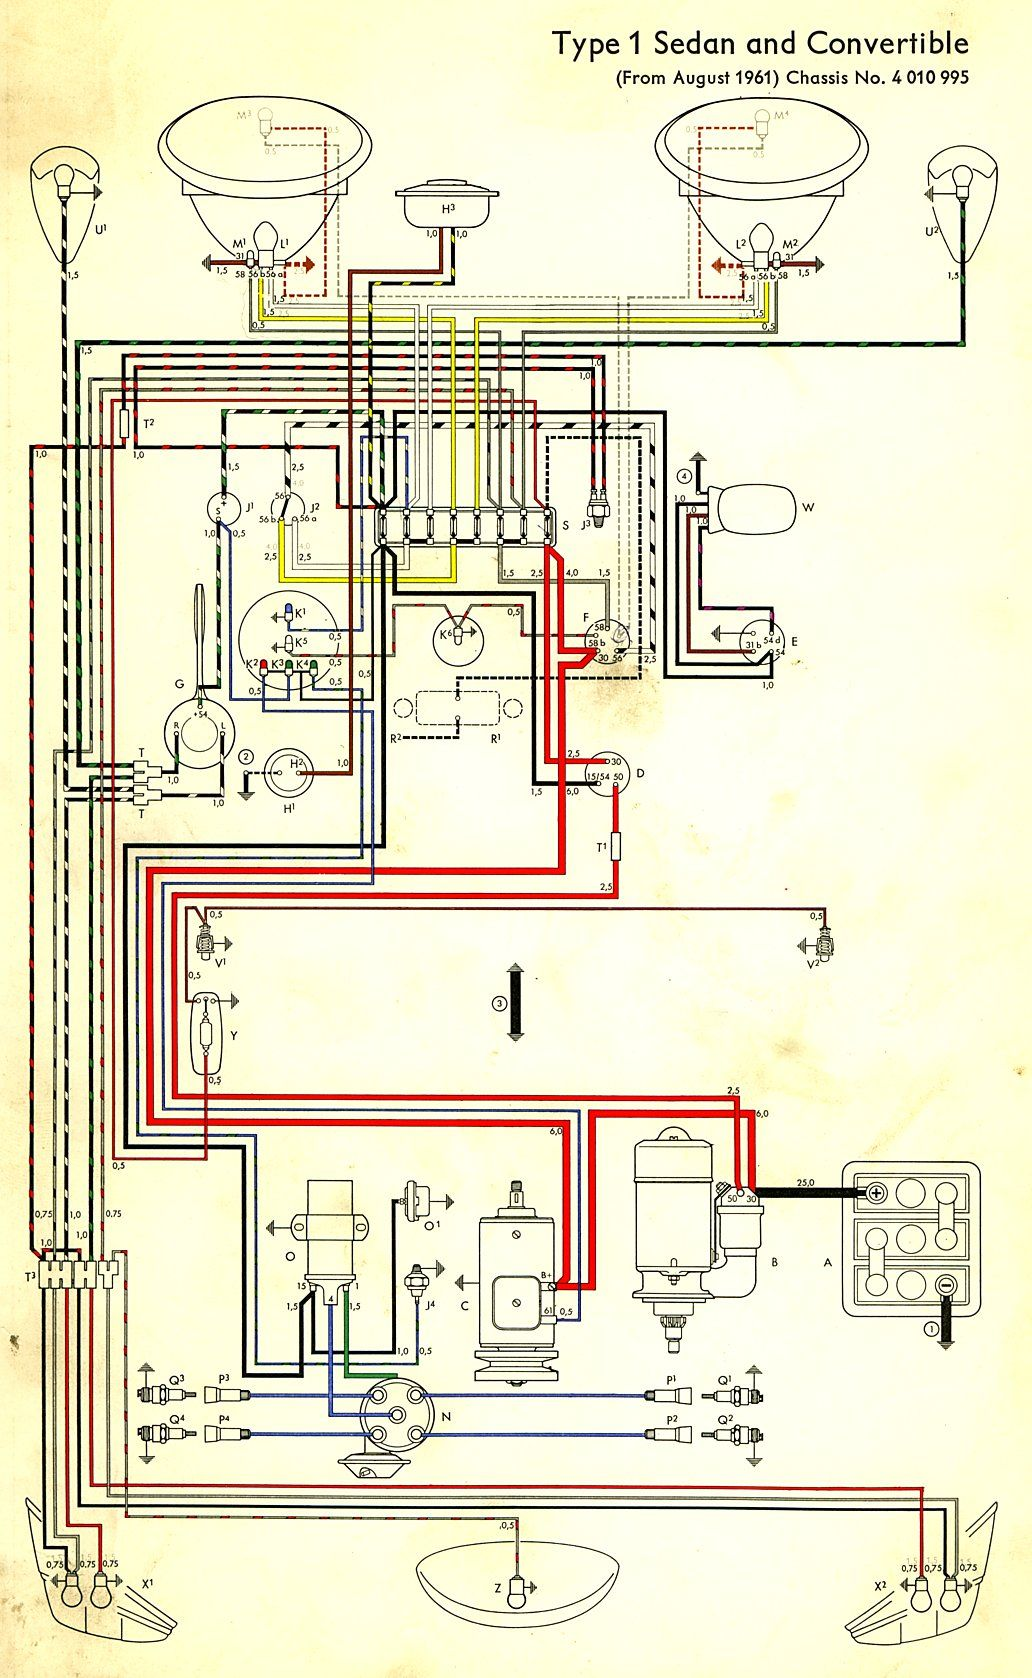 12 Volt Switch Wiring Diagram 1966 Vw Bug - Wiring Diagram G8 Vw Cabriolet Ignition Wiring Diagram on vw type 3 wiring diagram, vw wiring harness, vw bug wiring diagram, 2011 vw jetta tdi fuse diagram, 2011 vw jetta fuse panel diagram, vw door wiring diagram, vw ecu wiring diagram, vw charging system diagram, vw exhaust diagram, vw shift linkage diagram, 1977 vw bus wiring diagram, vw ignition lock cylinder diagram, vw distributor diagram, 2000 hyundai accent radio wiring diagram, vw parking brake diagram, system of a car ignition electrical diagram, 1964 chevy wiring diagram, vw coil diagram, 2006 gsxr 600 fuel pump wiring diagram, code 3 light bar wiring diagram,